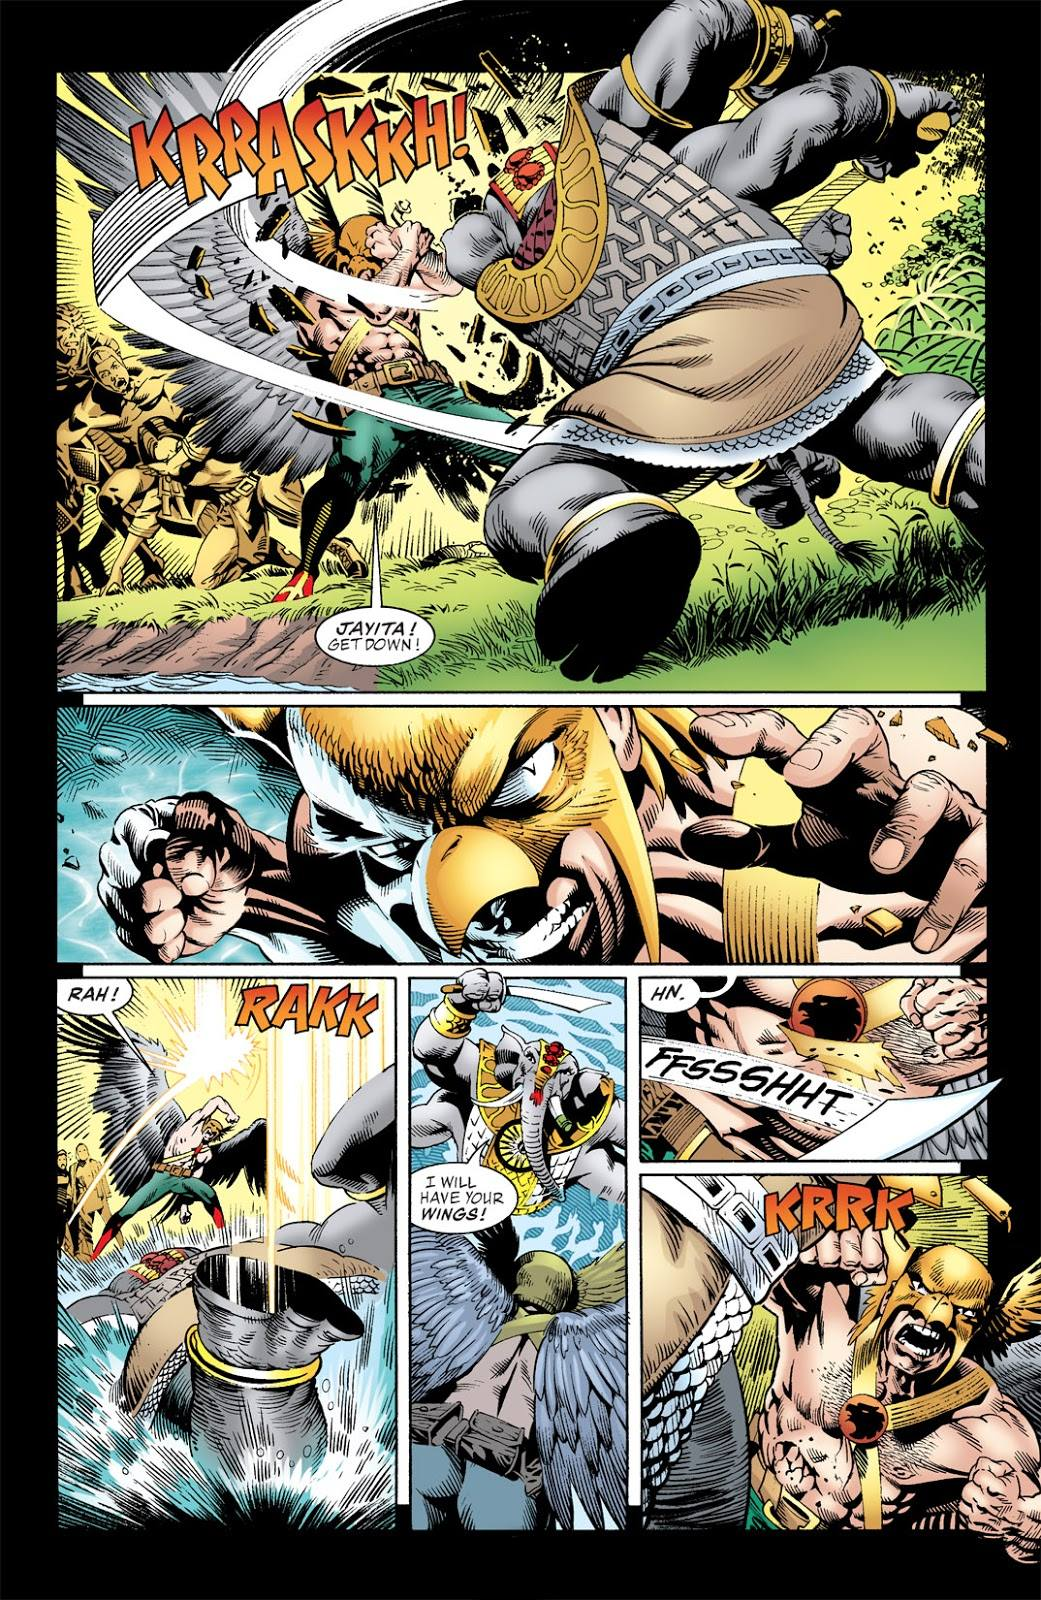 Geoff Johns Hawkman Volume One review